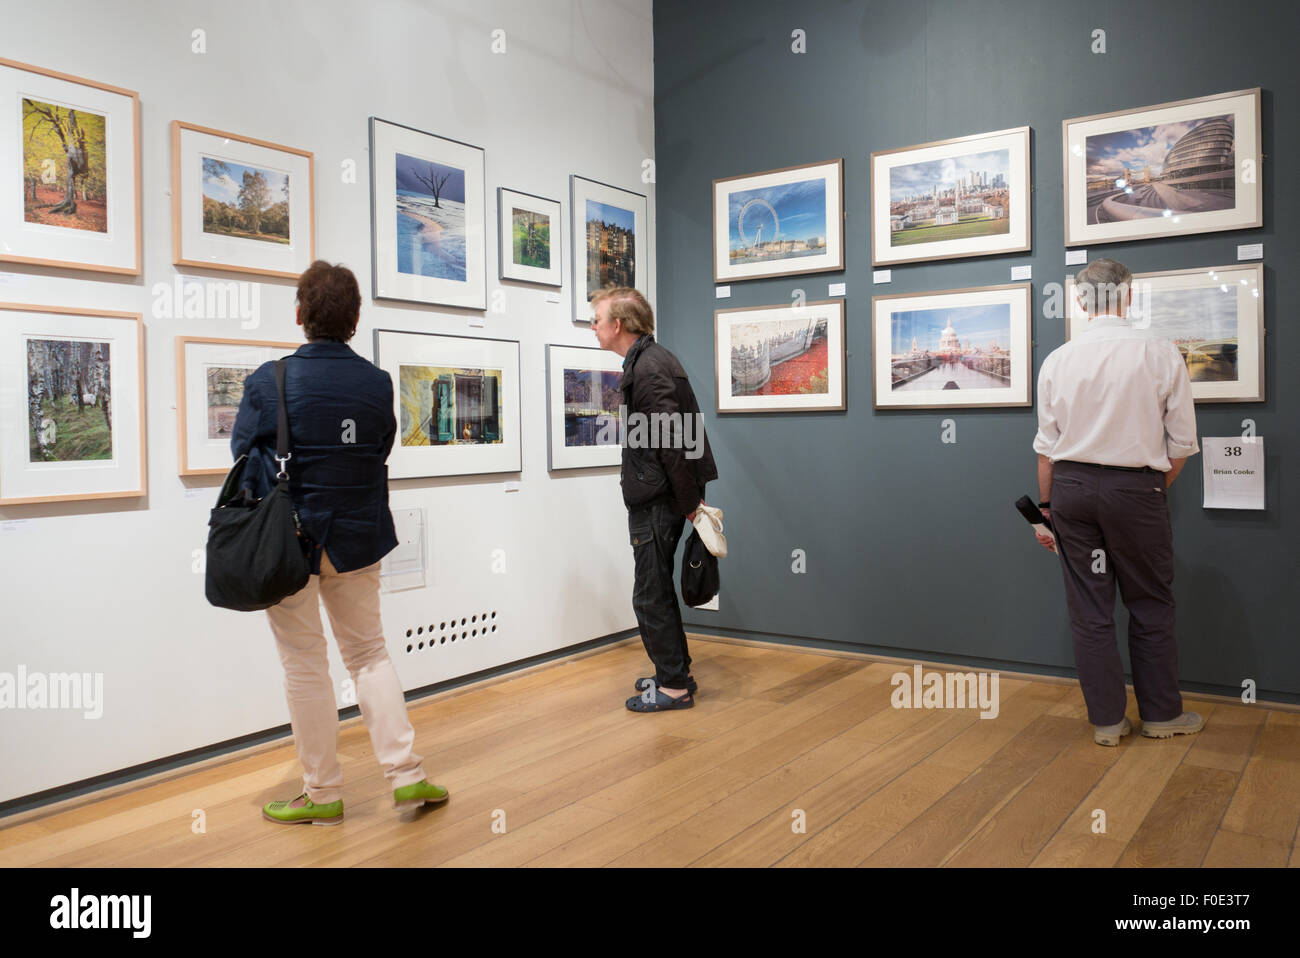 People in a gallery looking at a photography exhibition, the Mall galleries, the Mall, London UK - Stock Image